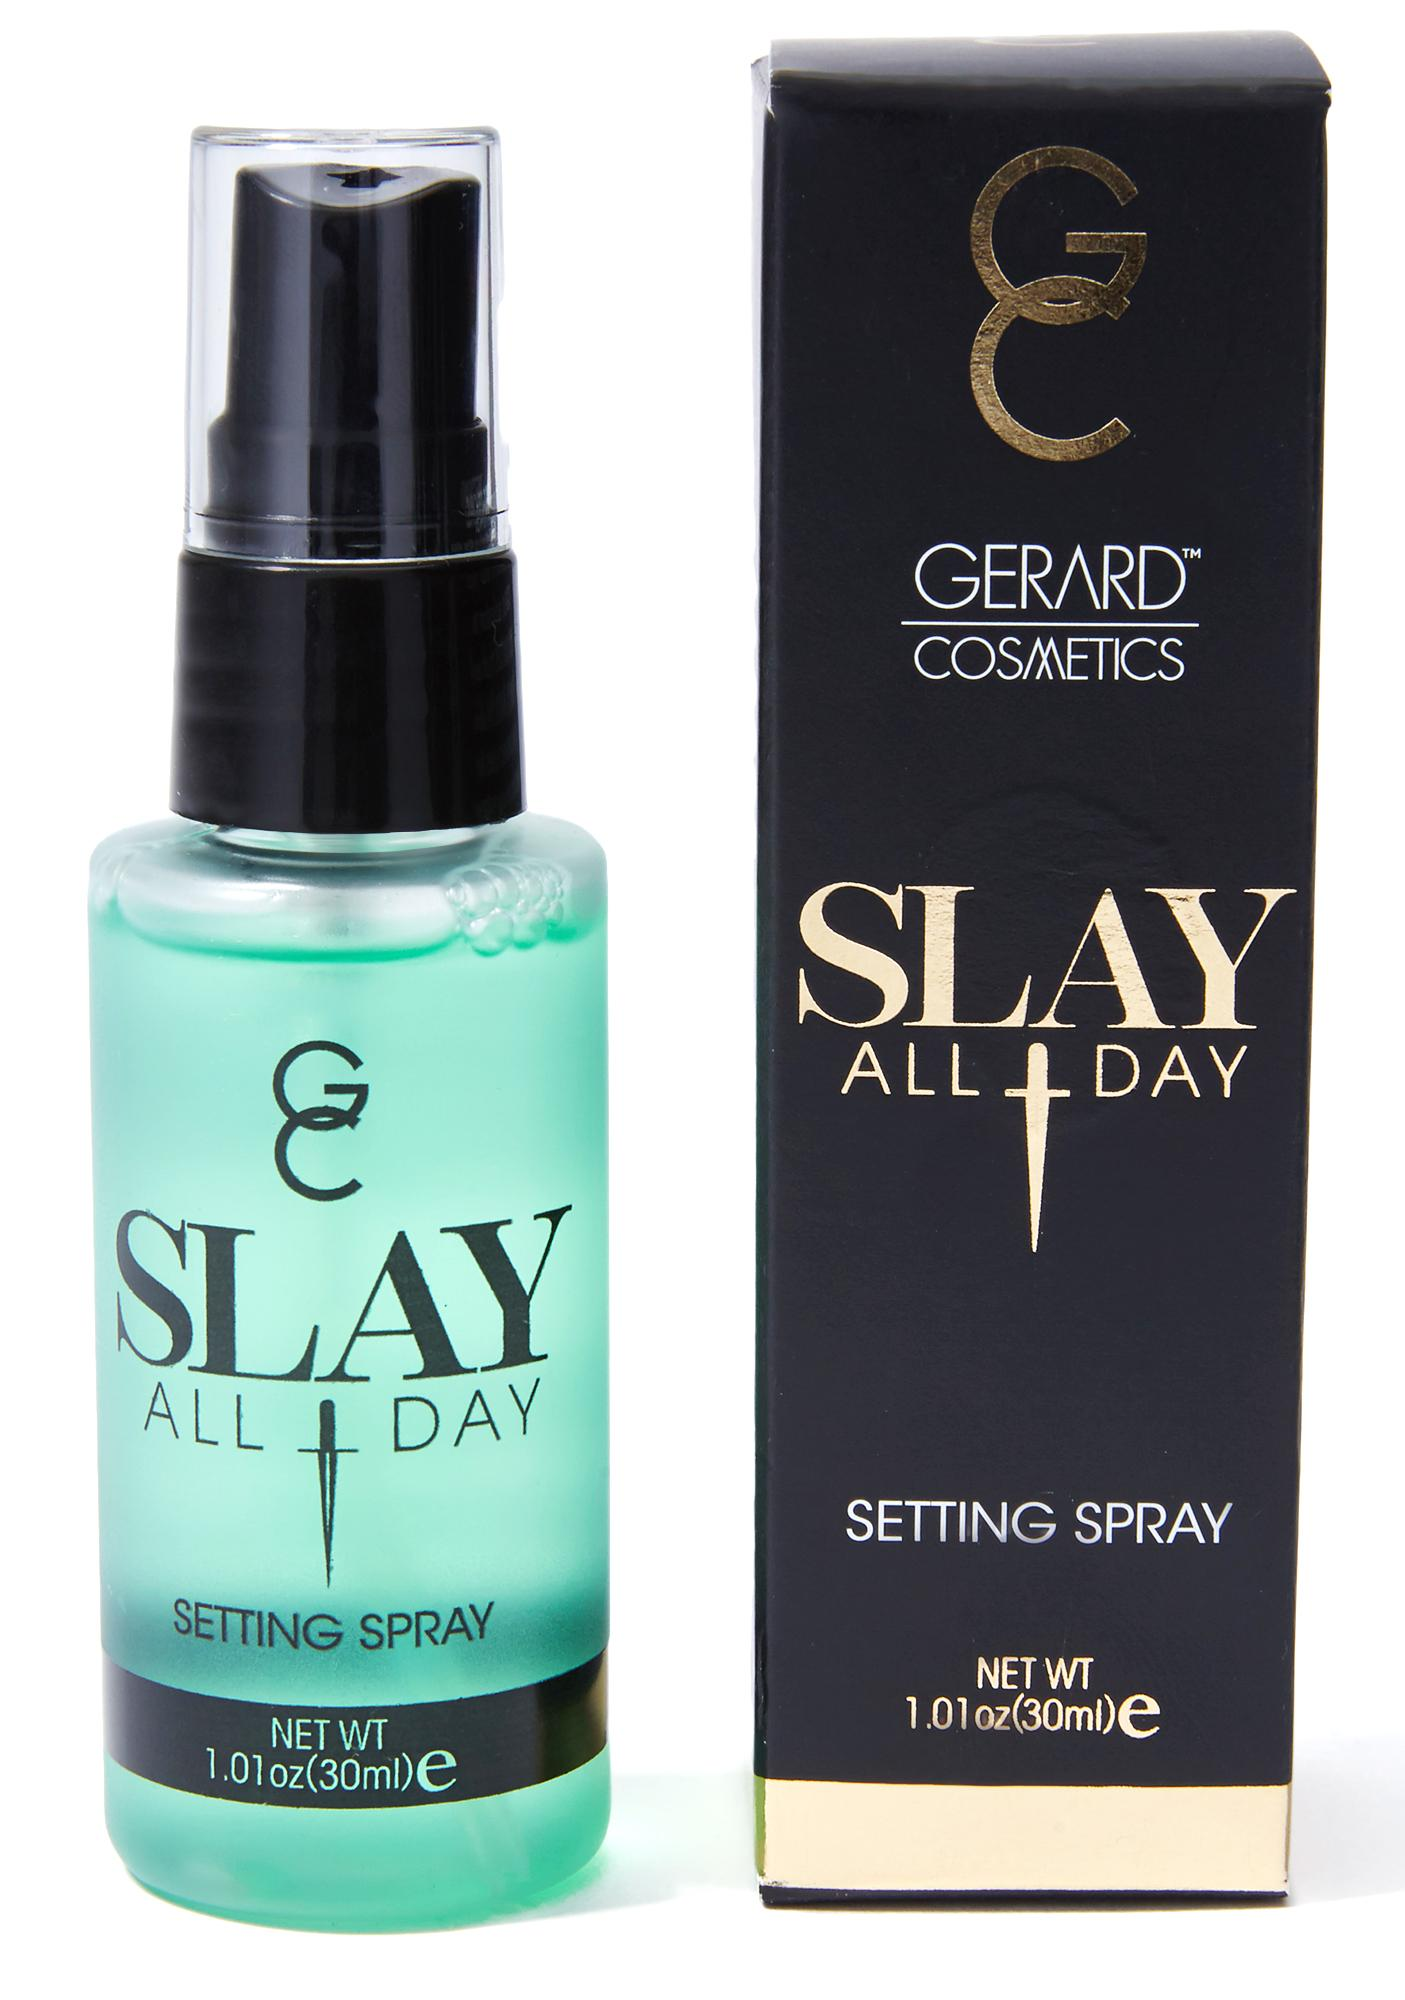 Gerard Cosmetics Cucumber Slay All Day Setting Spray